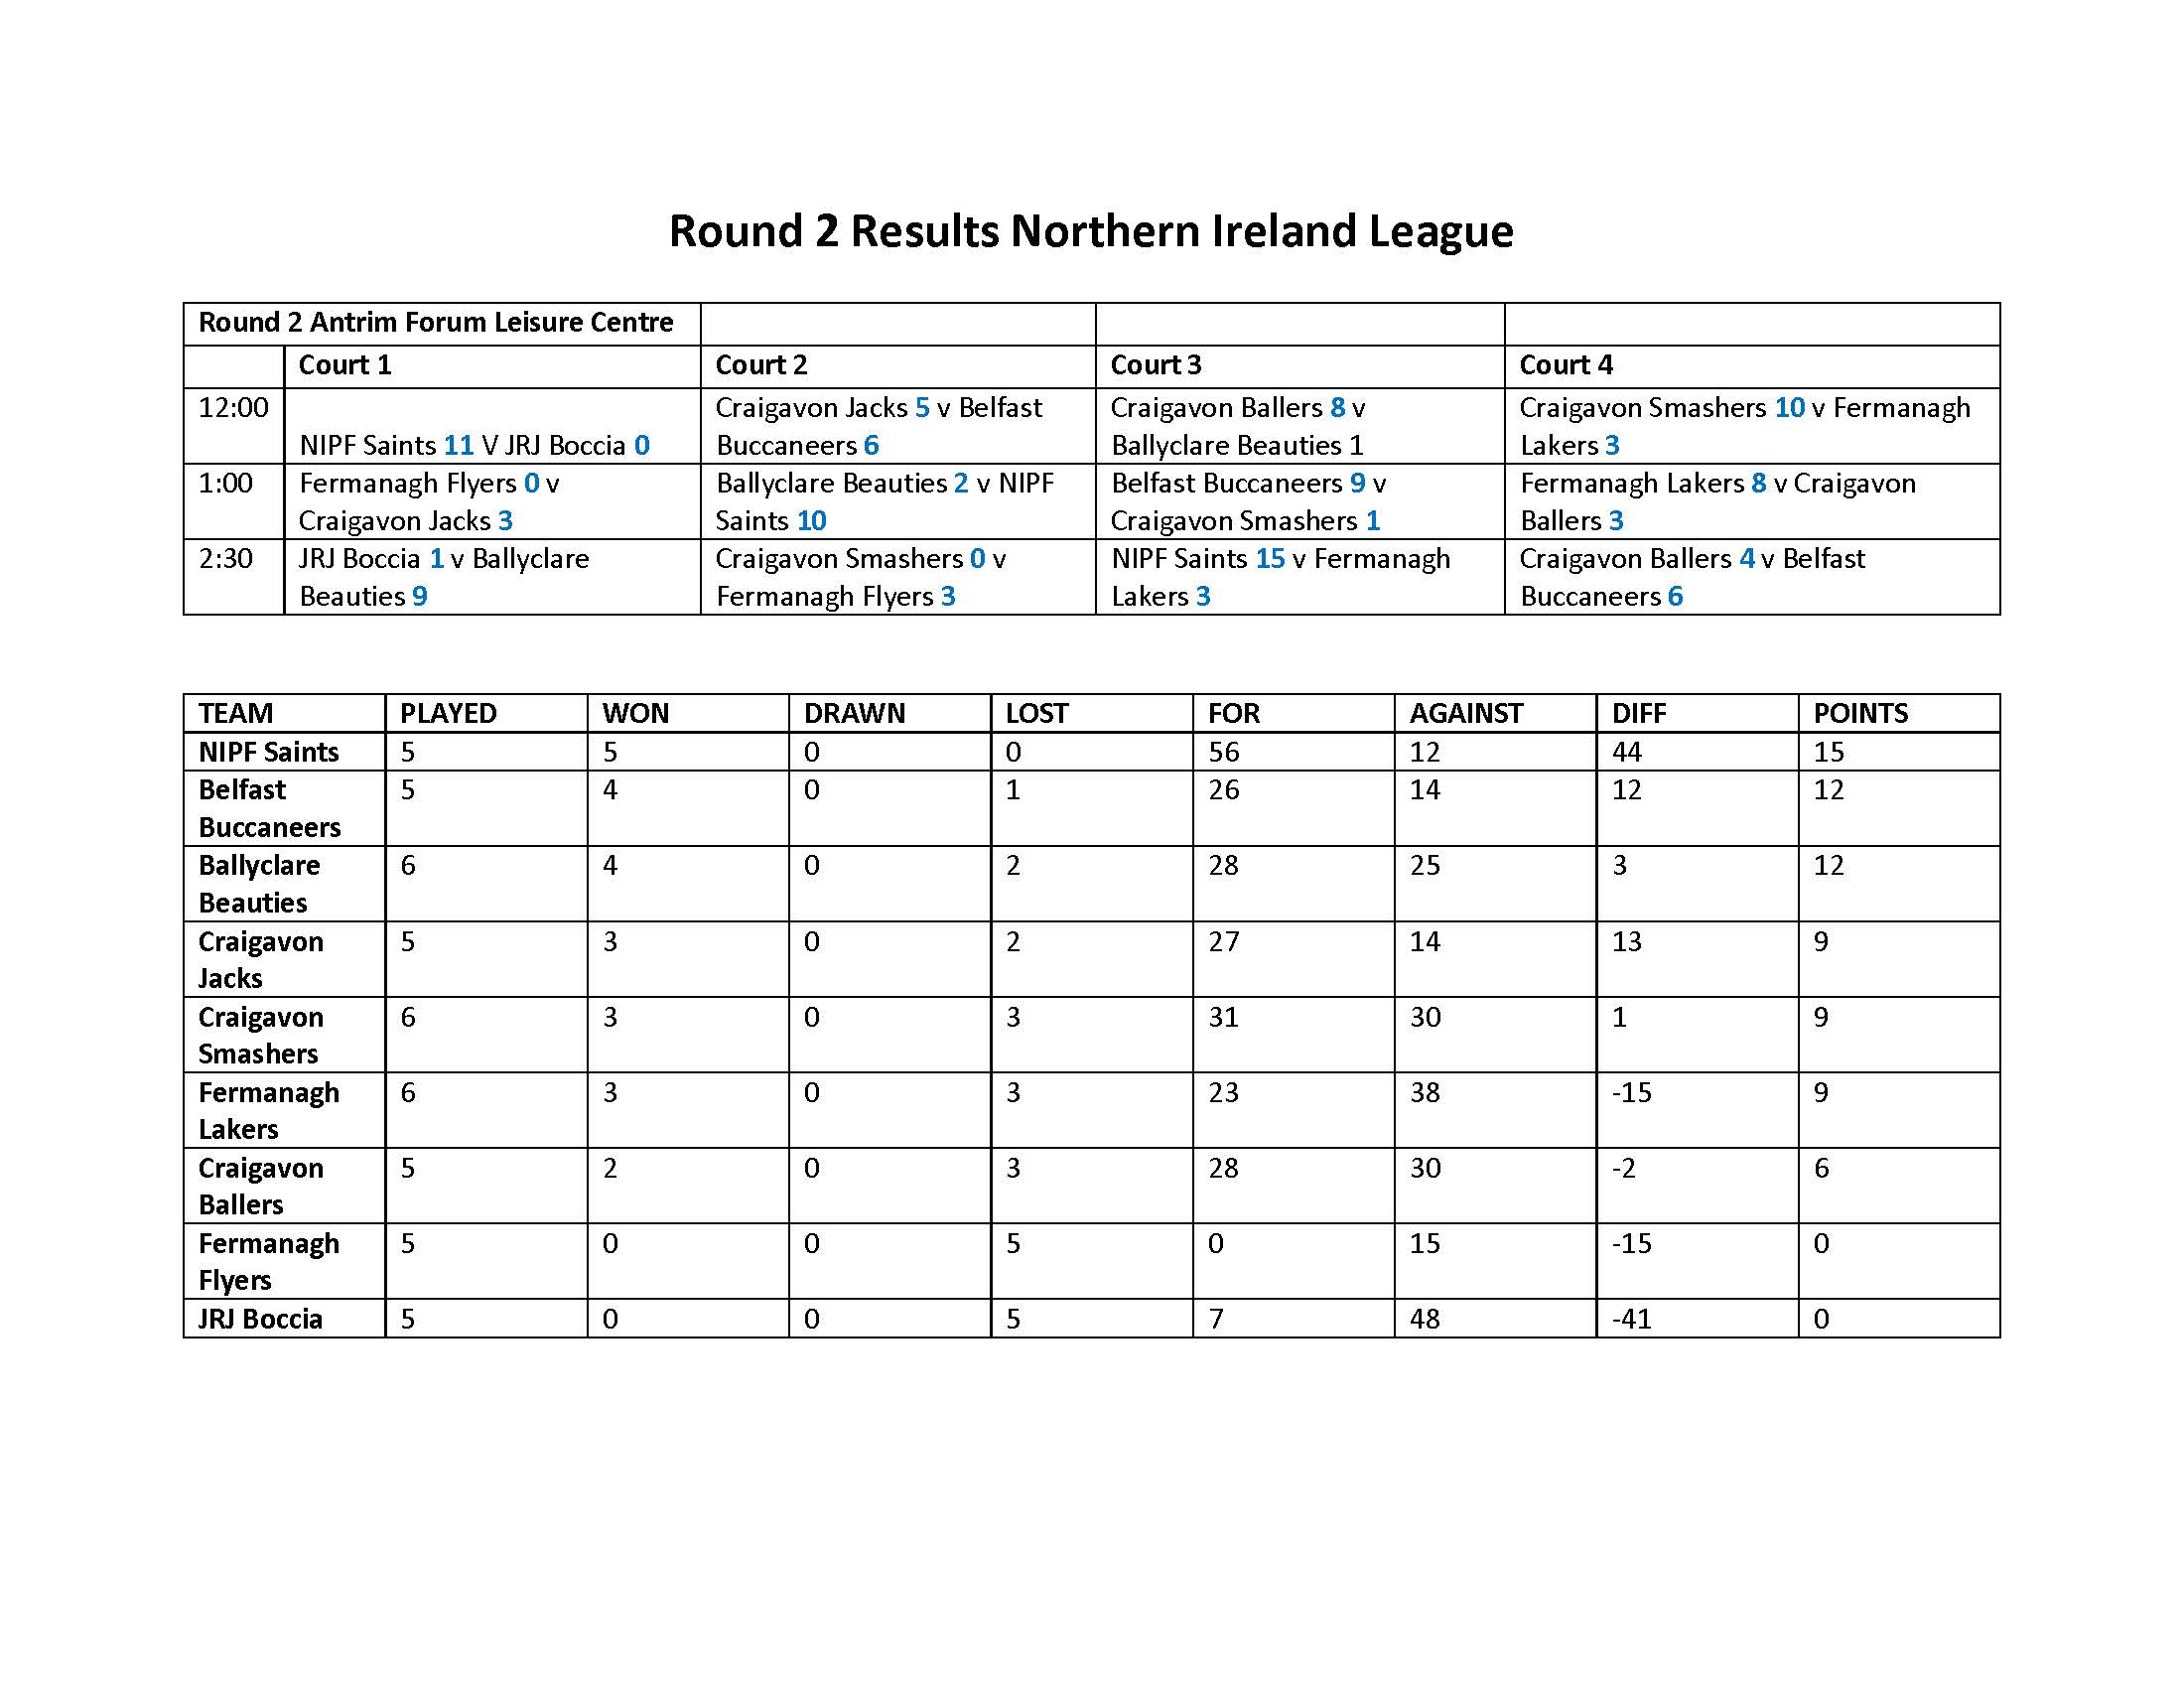 A table showing all results from round two of the Northern Ireland League. Alternative formats are available upon request.